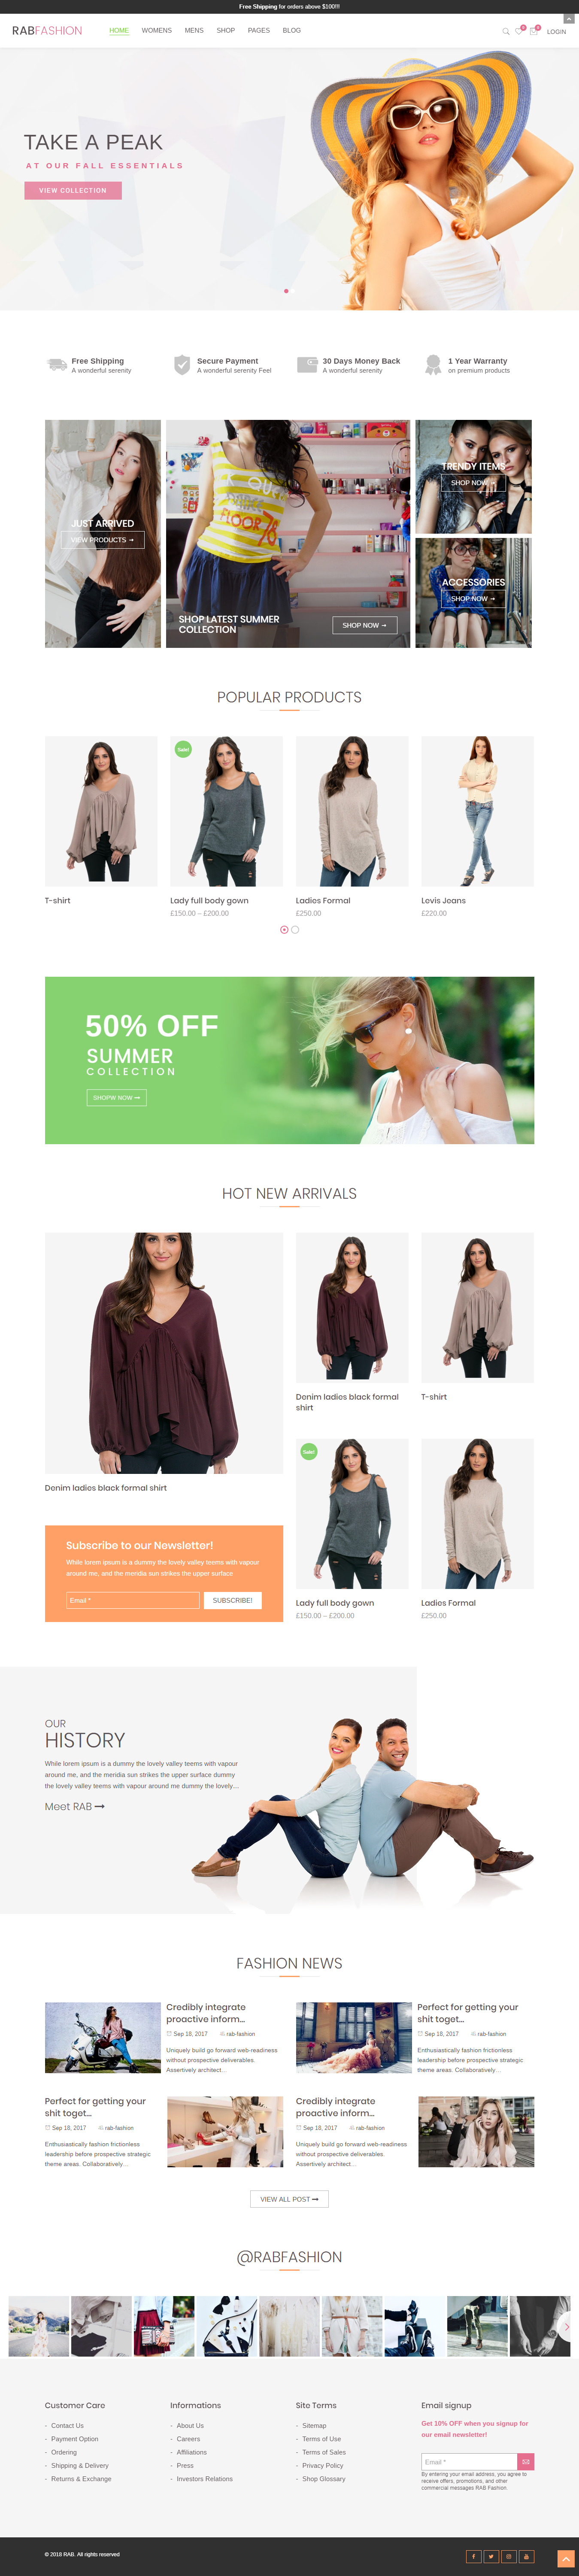 rab best premium fashion wordpress theme - 10+ Best Premium Fashion WordPress Themes